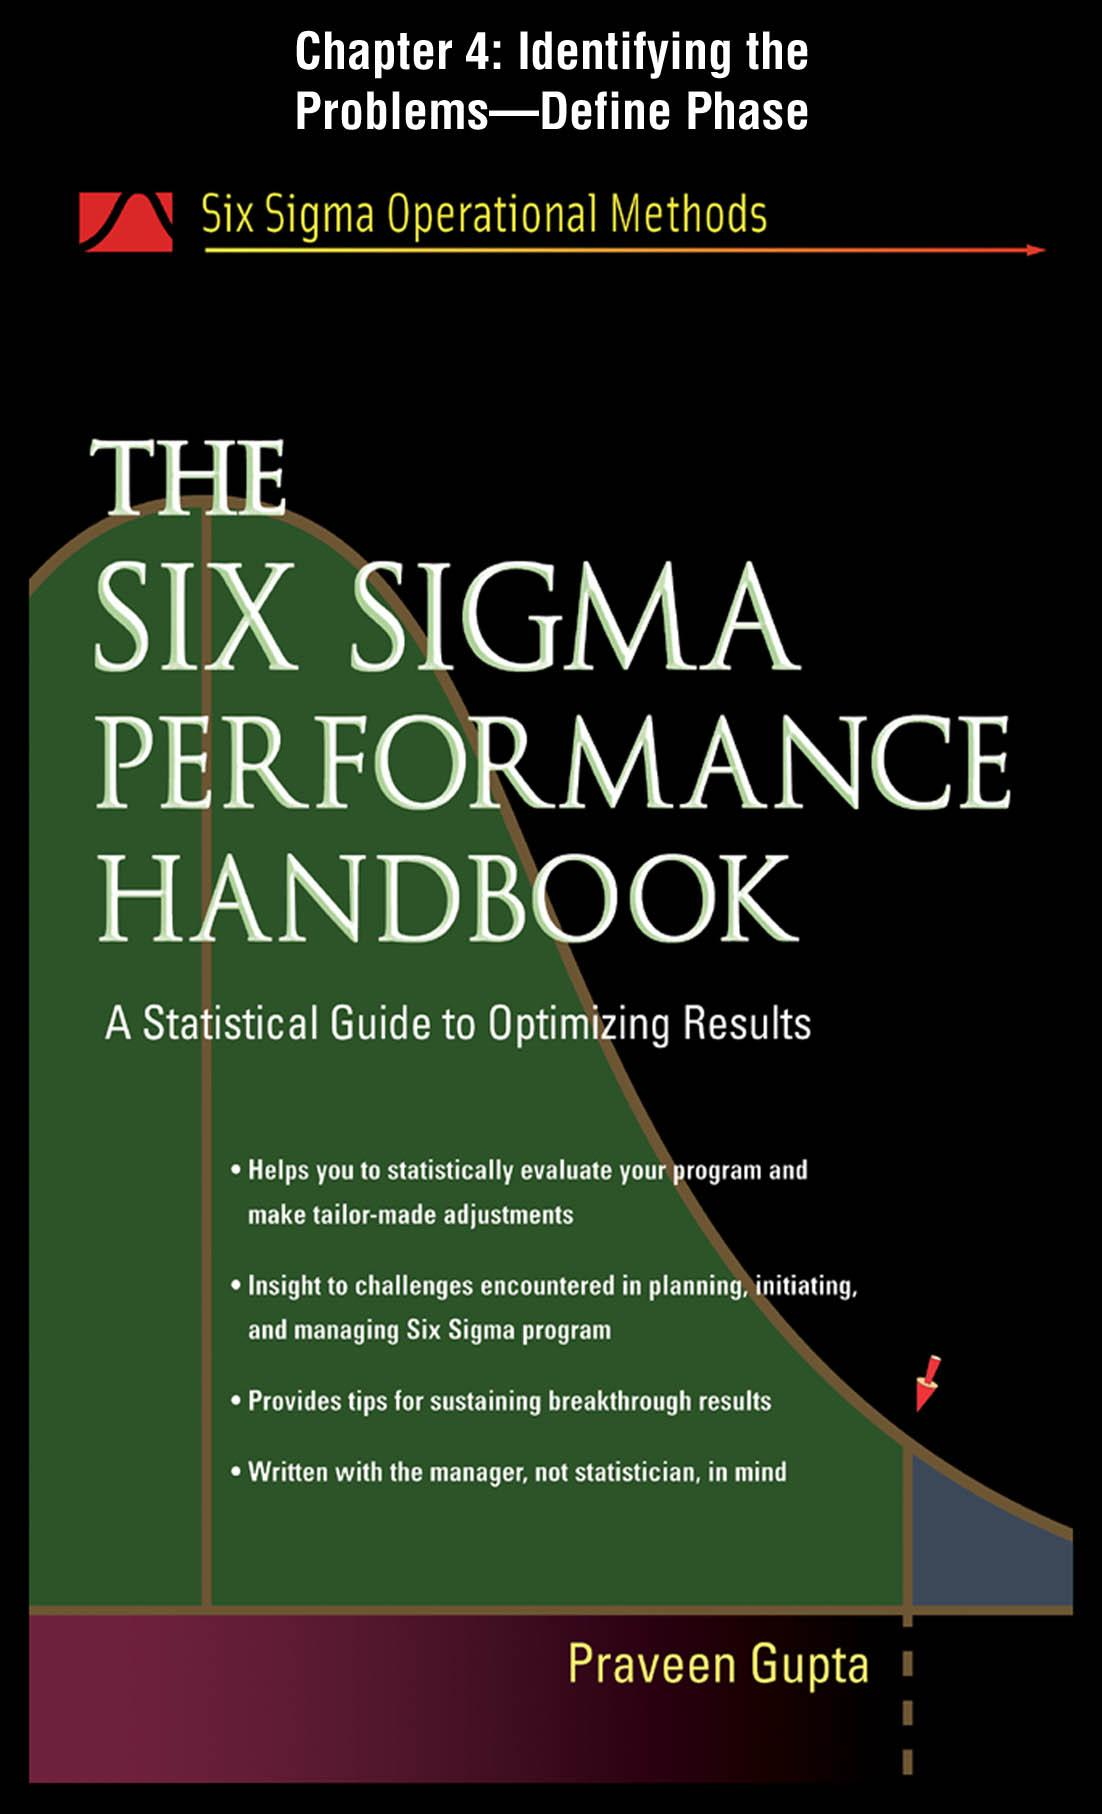 The Six Sigma Performance Handbook: Indentifying the Problems EB2370002601863